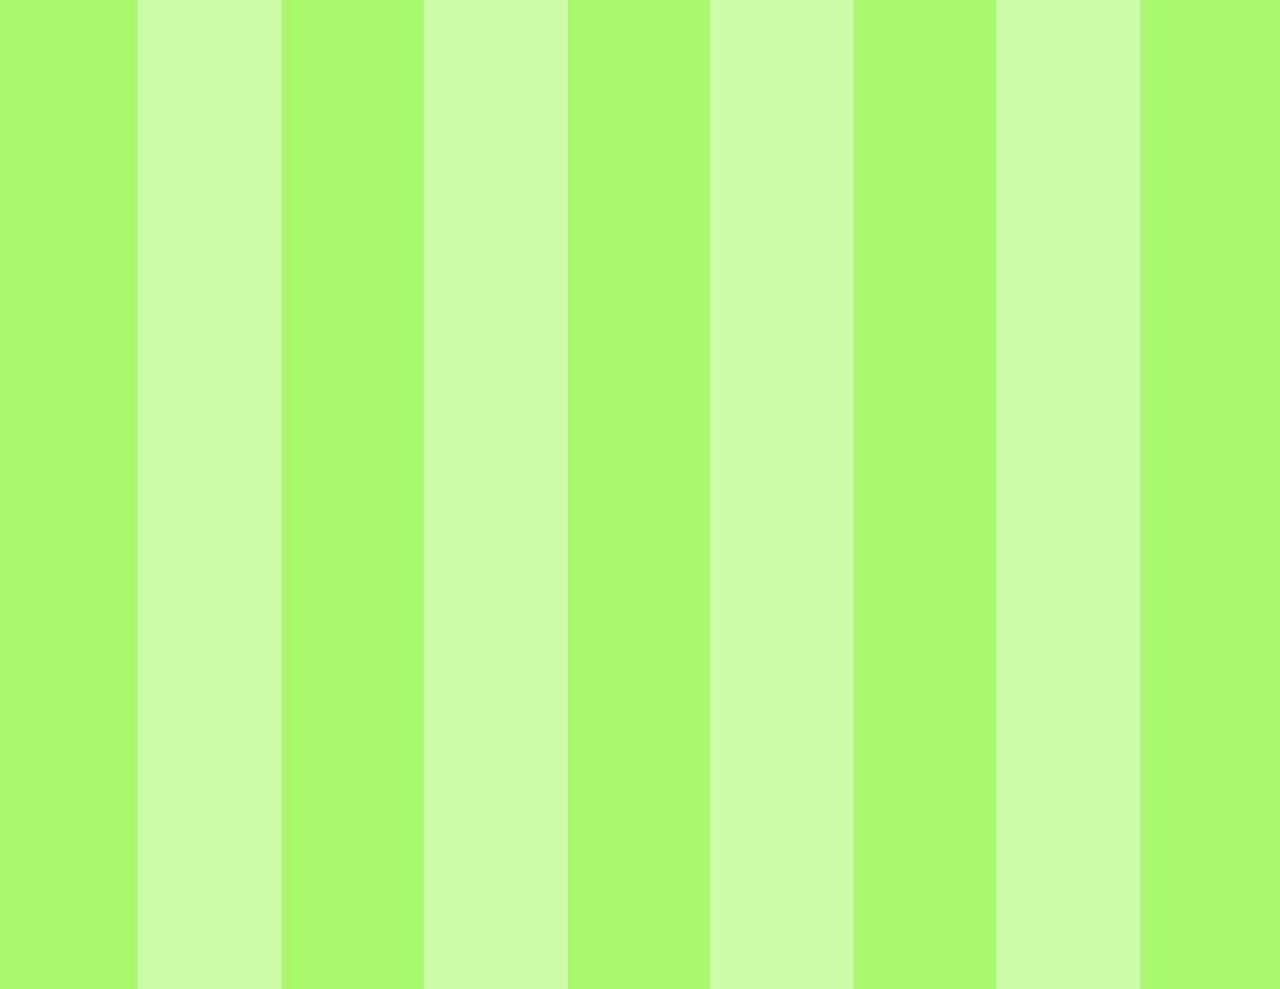 Lime green backgrounds download wallpaper pinterest lime lime green wallpaper wallpapers wallpapers and backgrounds aloadofball Gallery